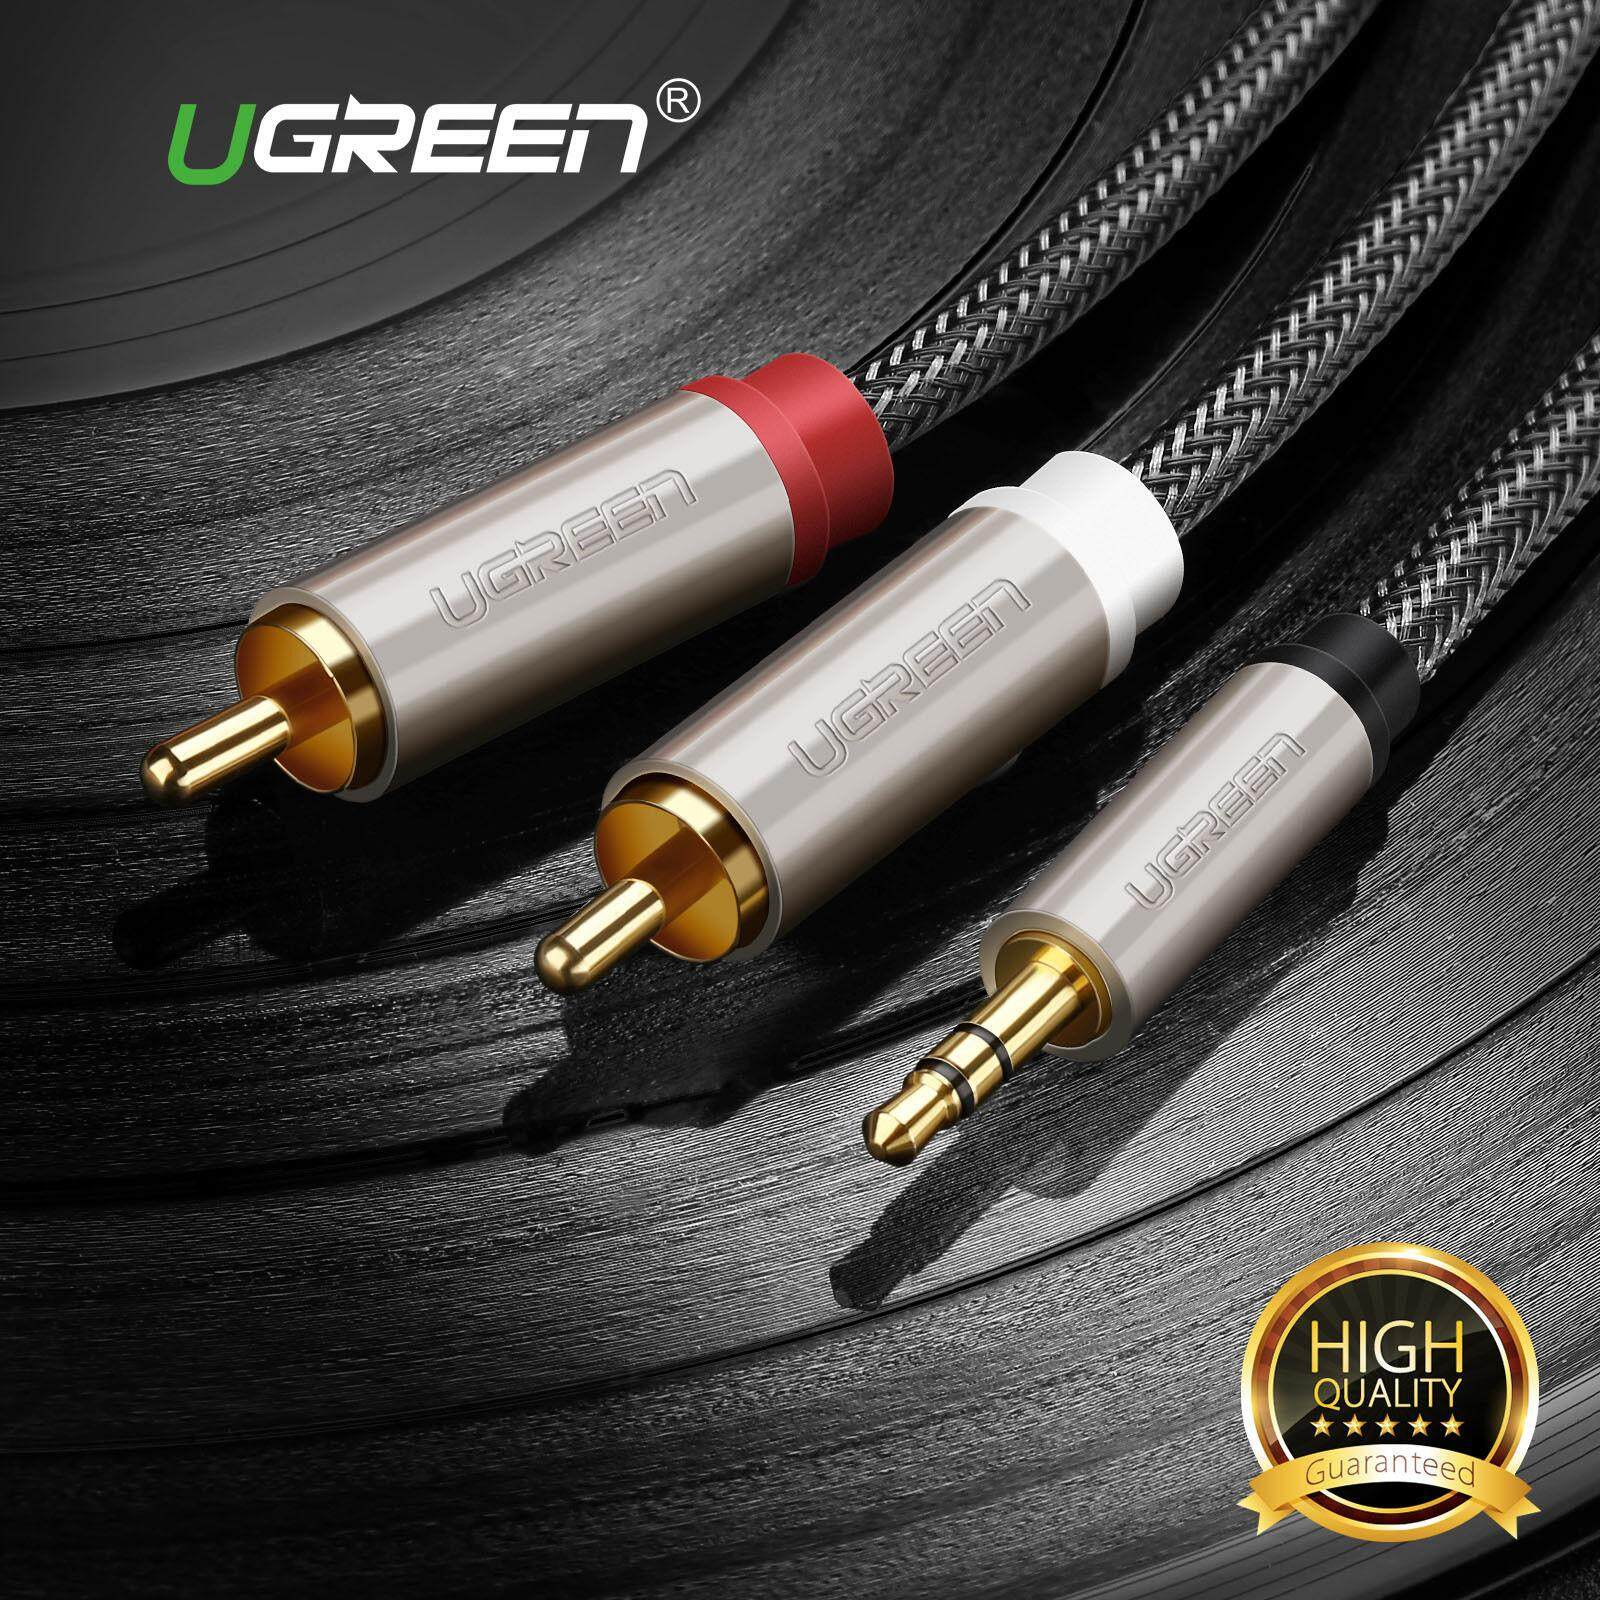 Ugreen HiFi Aux Audio 3.5mm Stereo to 2 RCA Y Cable 0.5